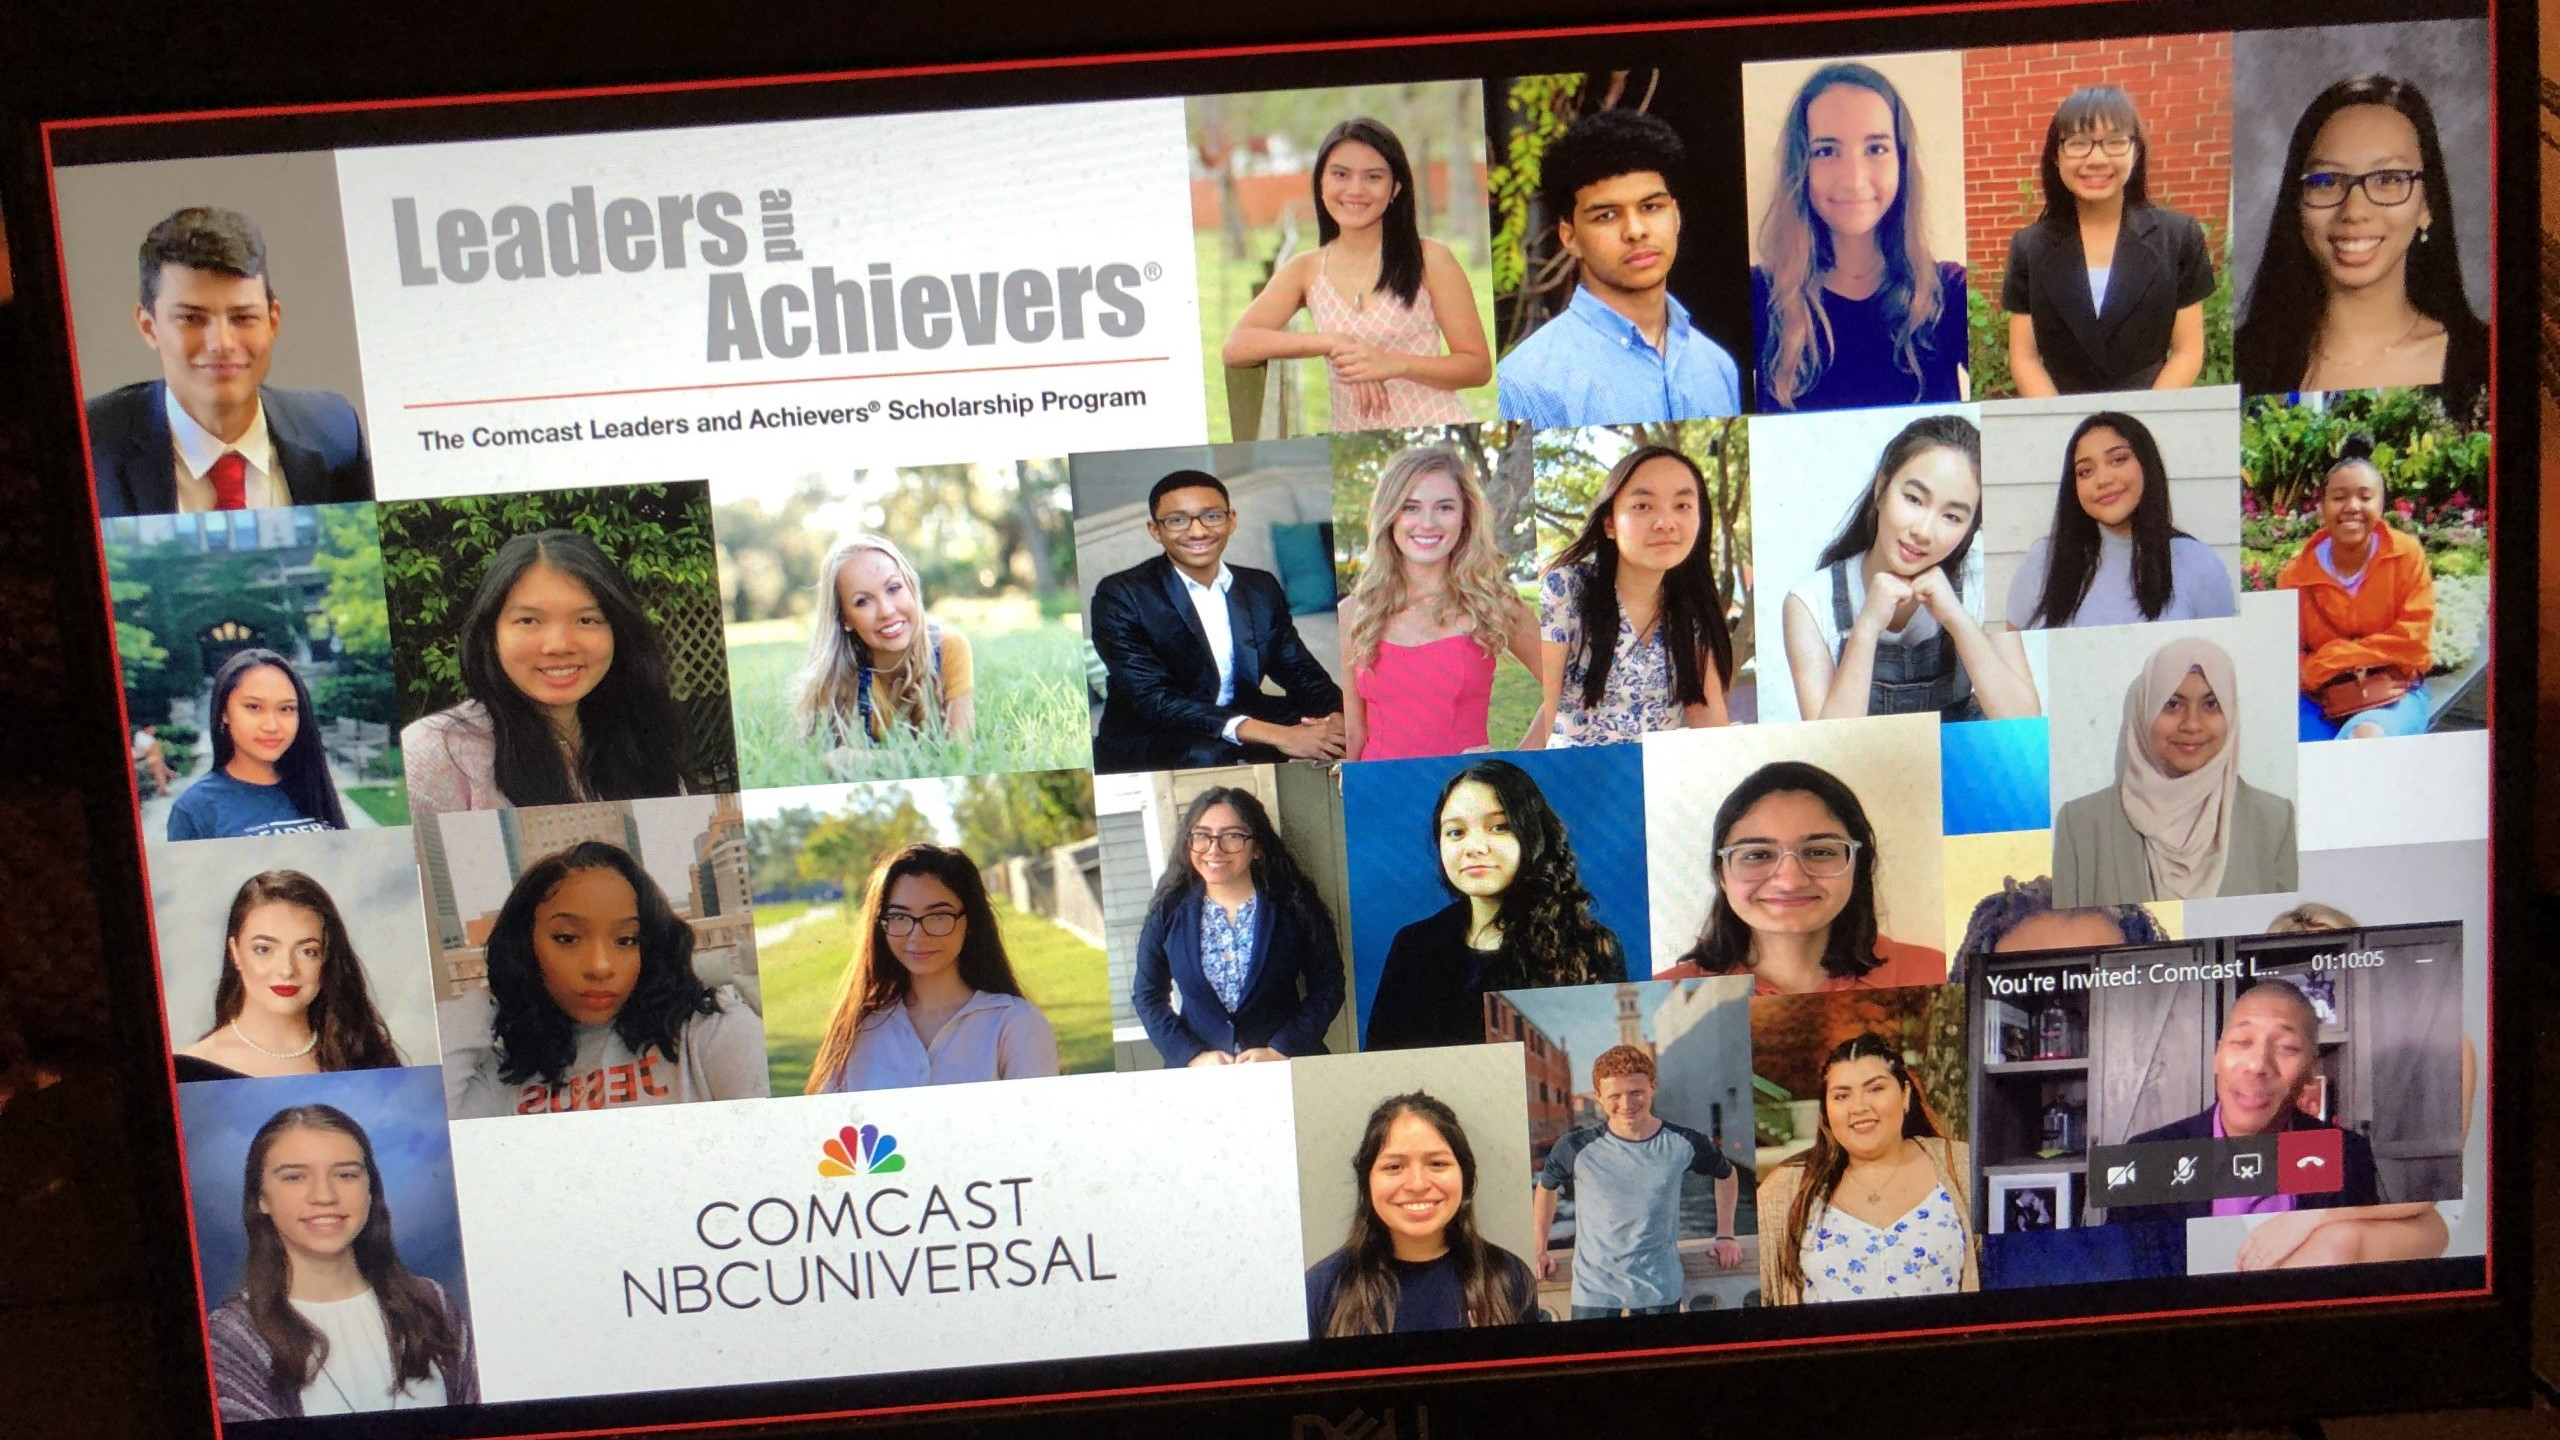 Collage of Leaders and Achievers winners